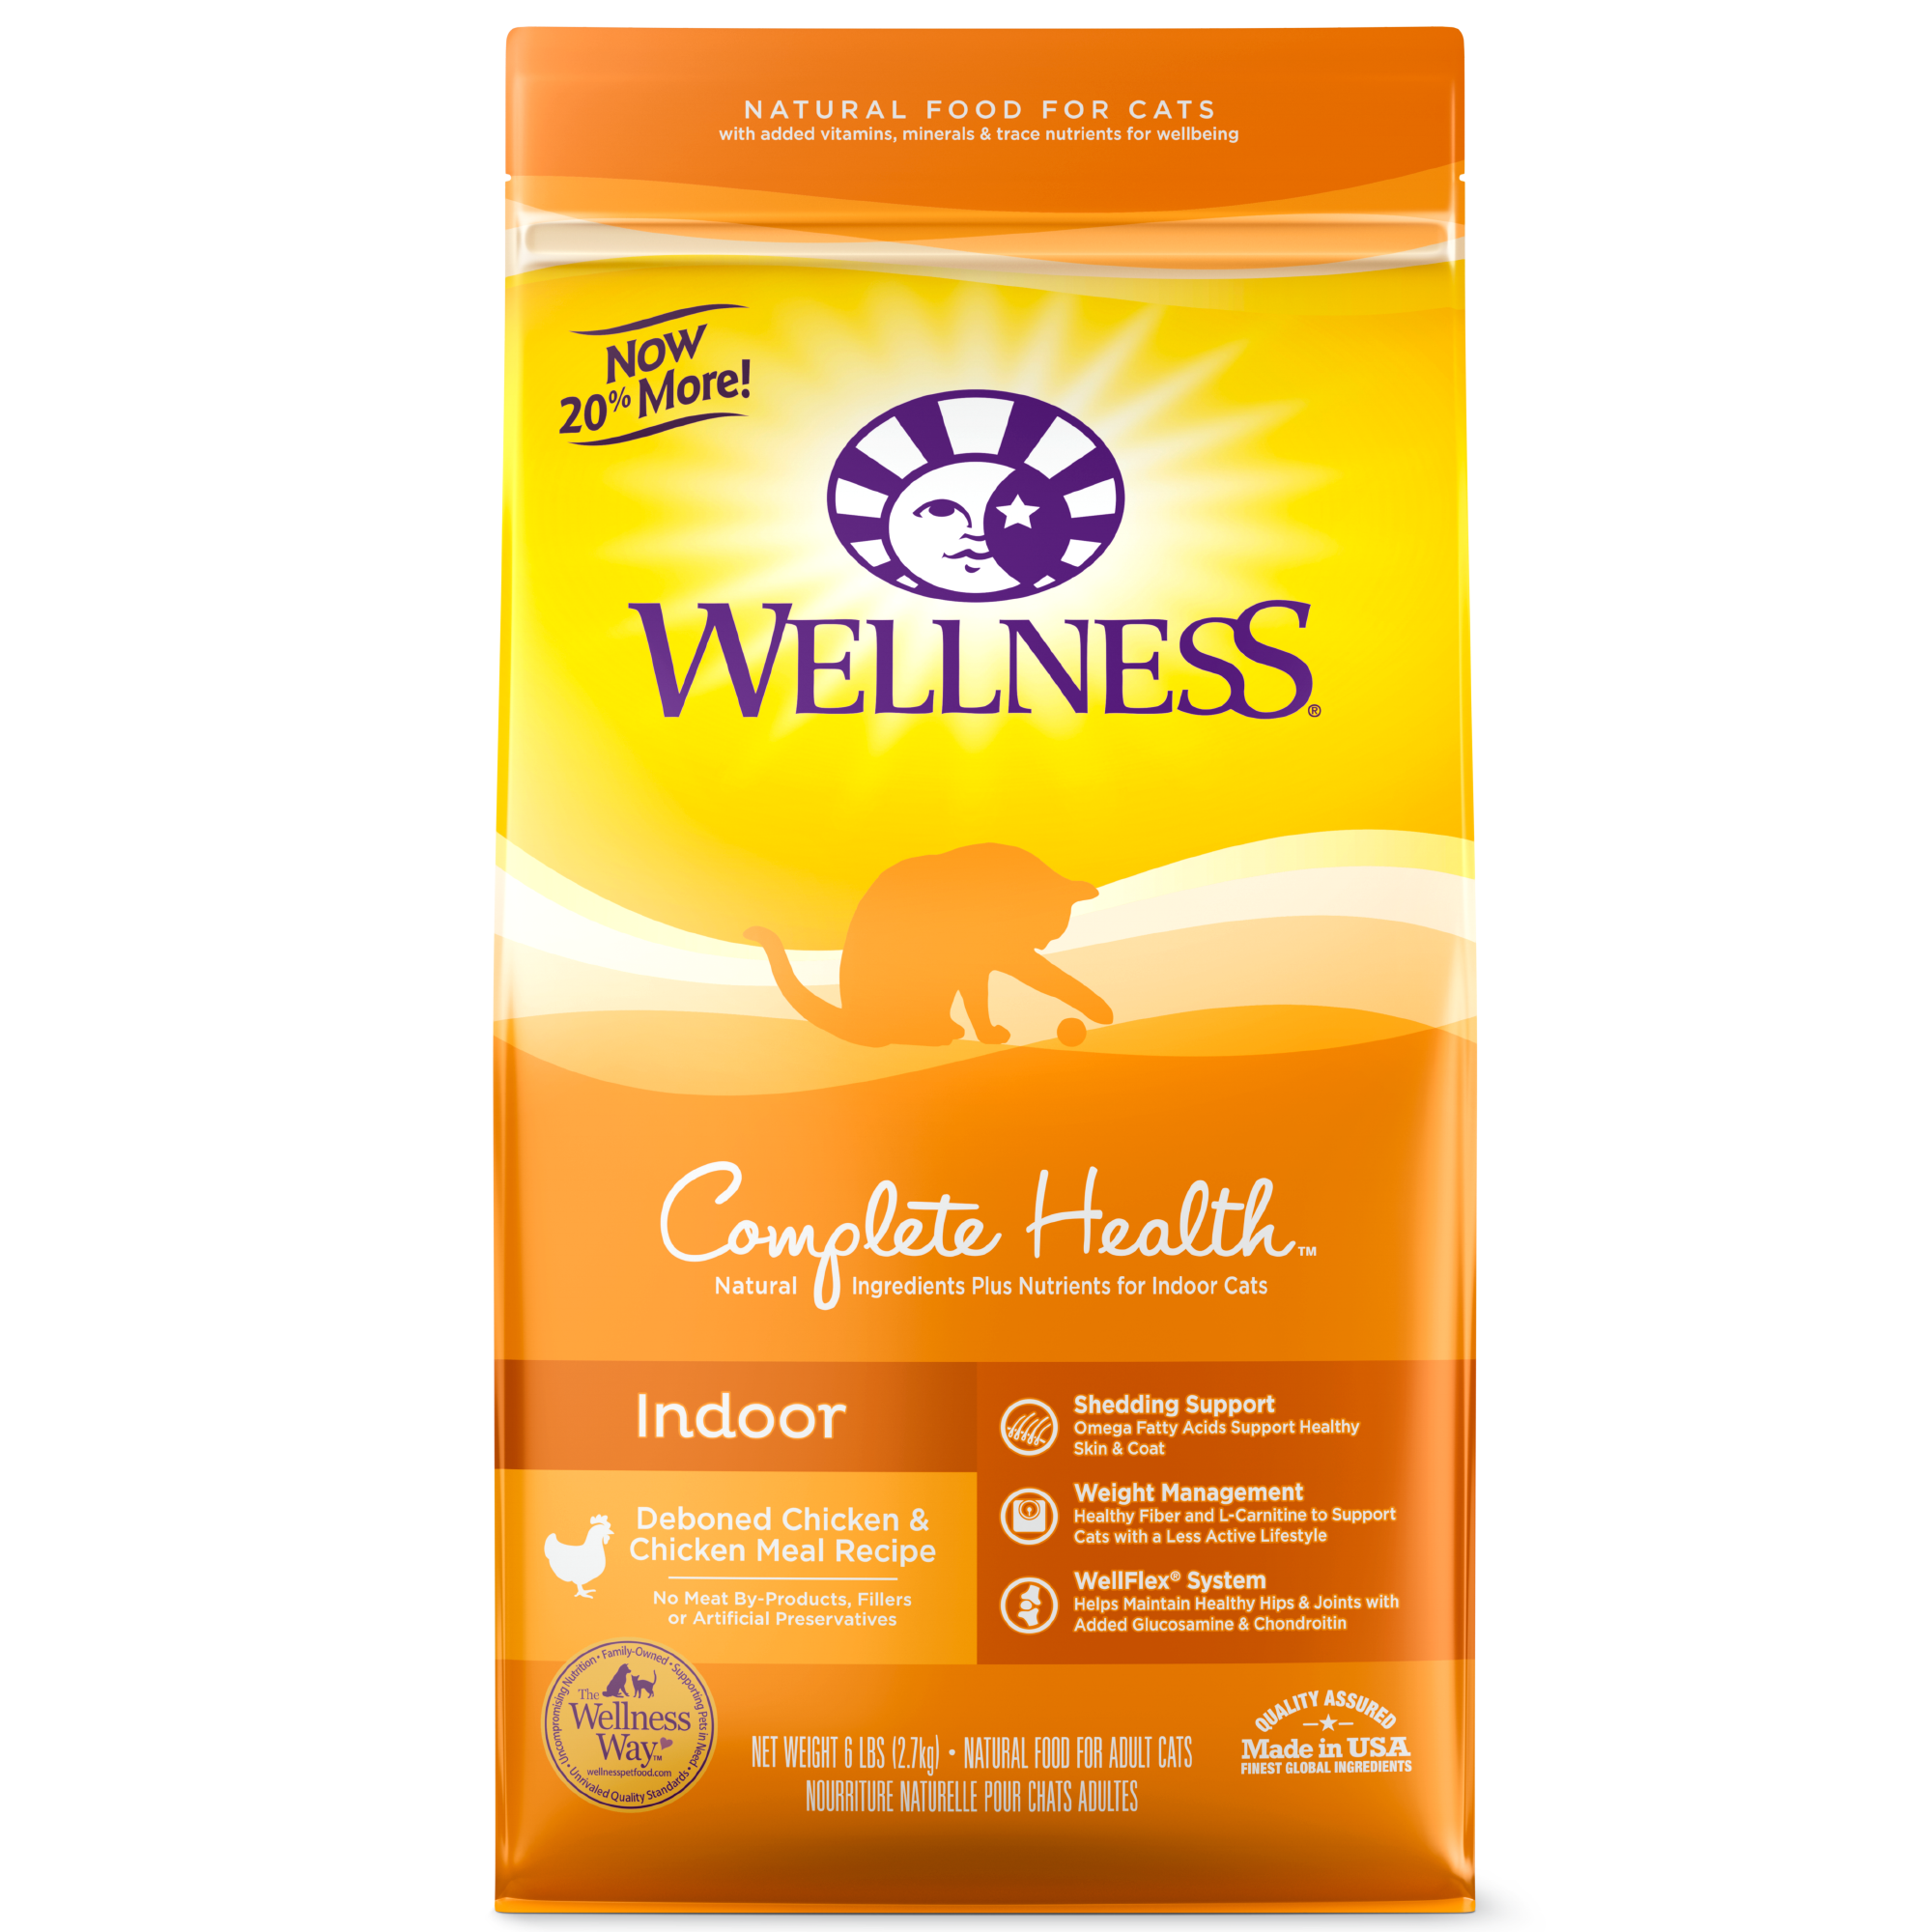 Wellness Complete Health Indoor, Deboned Chicken & Chicken Meal Recipe Dry Cat Food, 2.5-lb bag